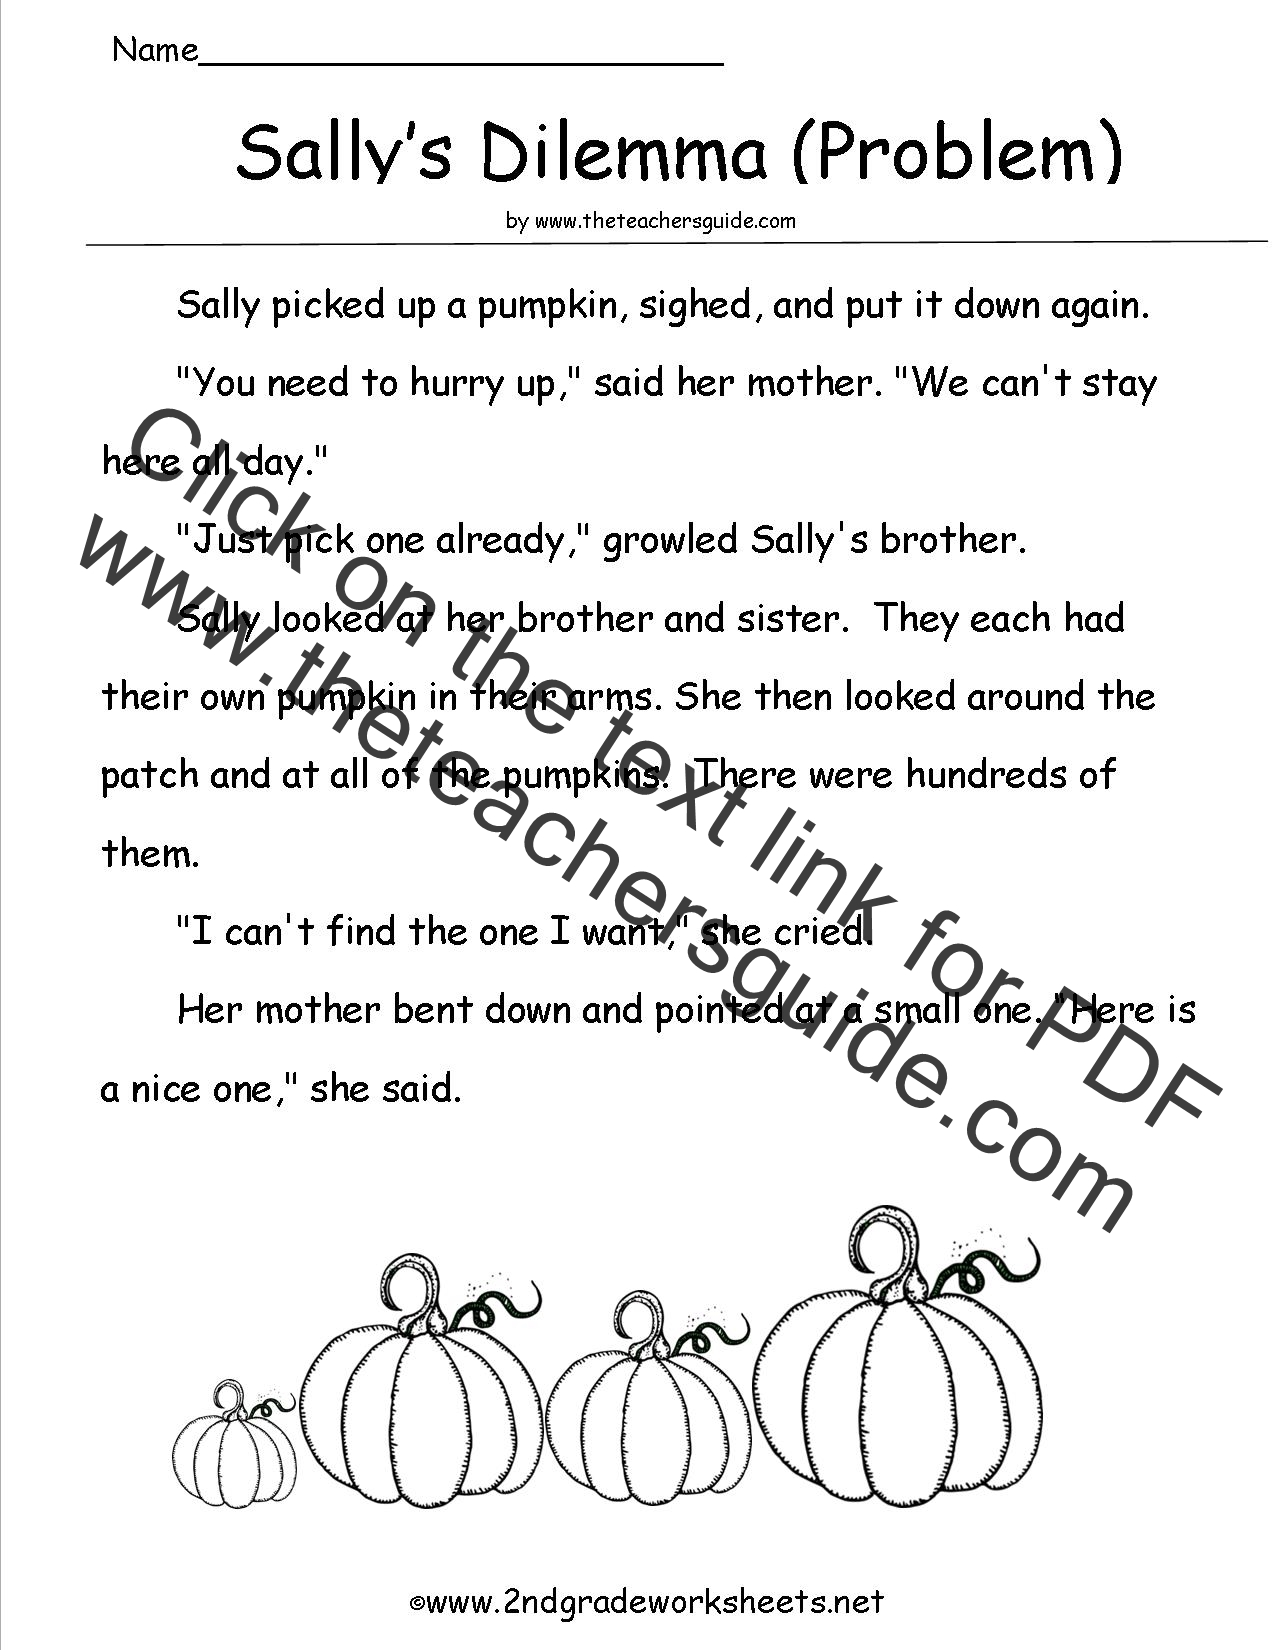 Worksheets Halloween Worksheets halloween worksheets and printouts pumpkin comprehension paper